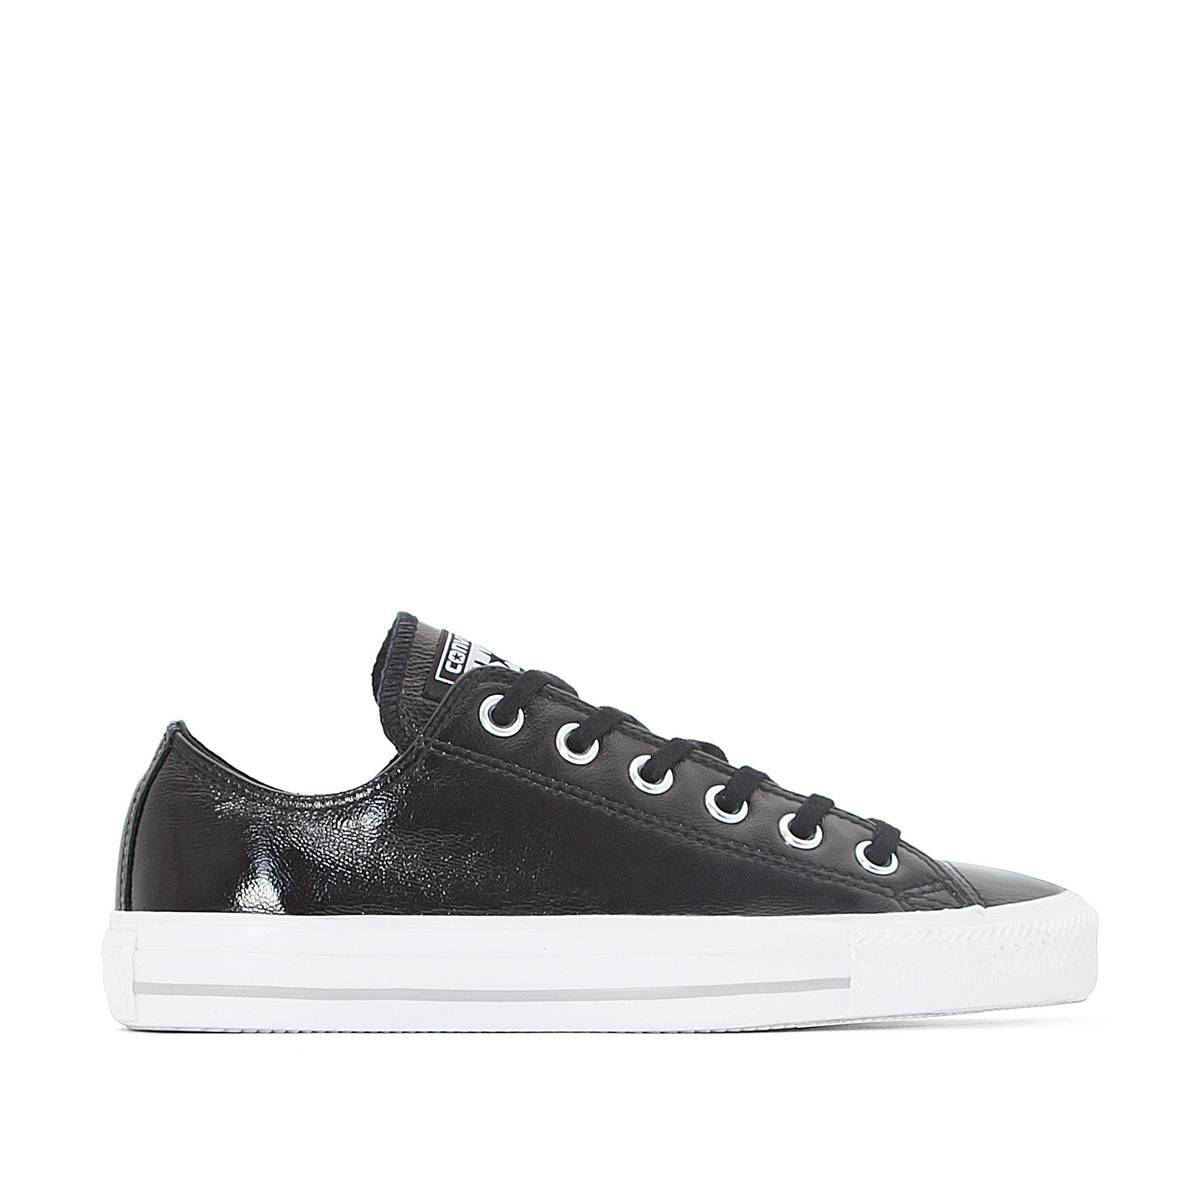 Converse Zapatillas CTAS Crinkled Patent Leather Ox negro